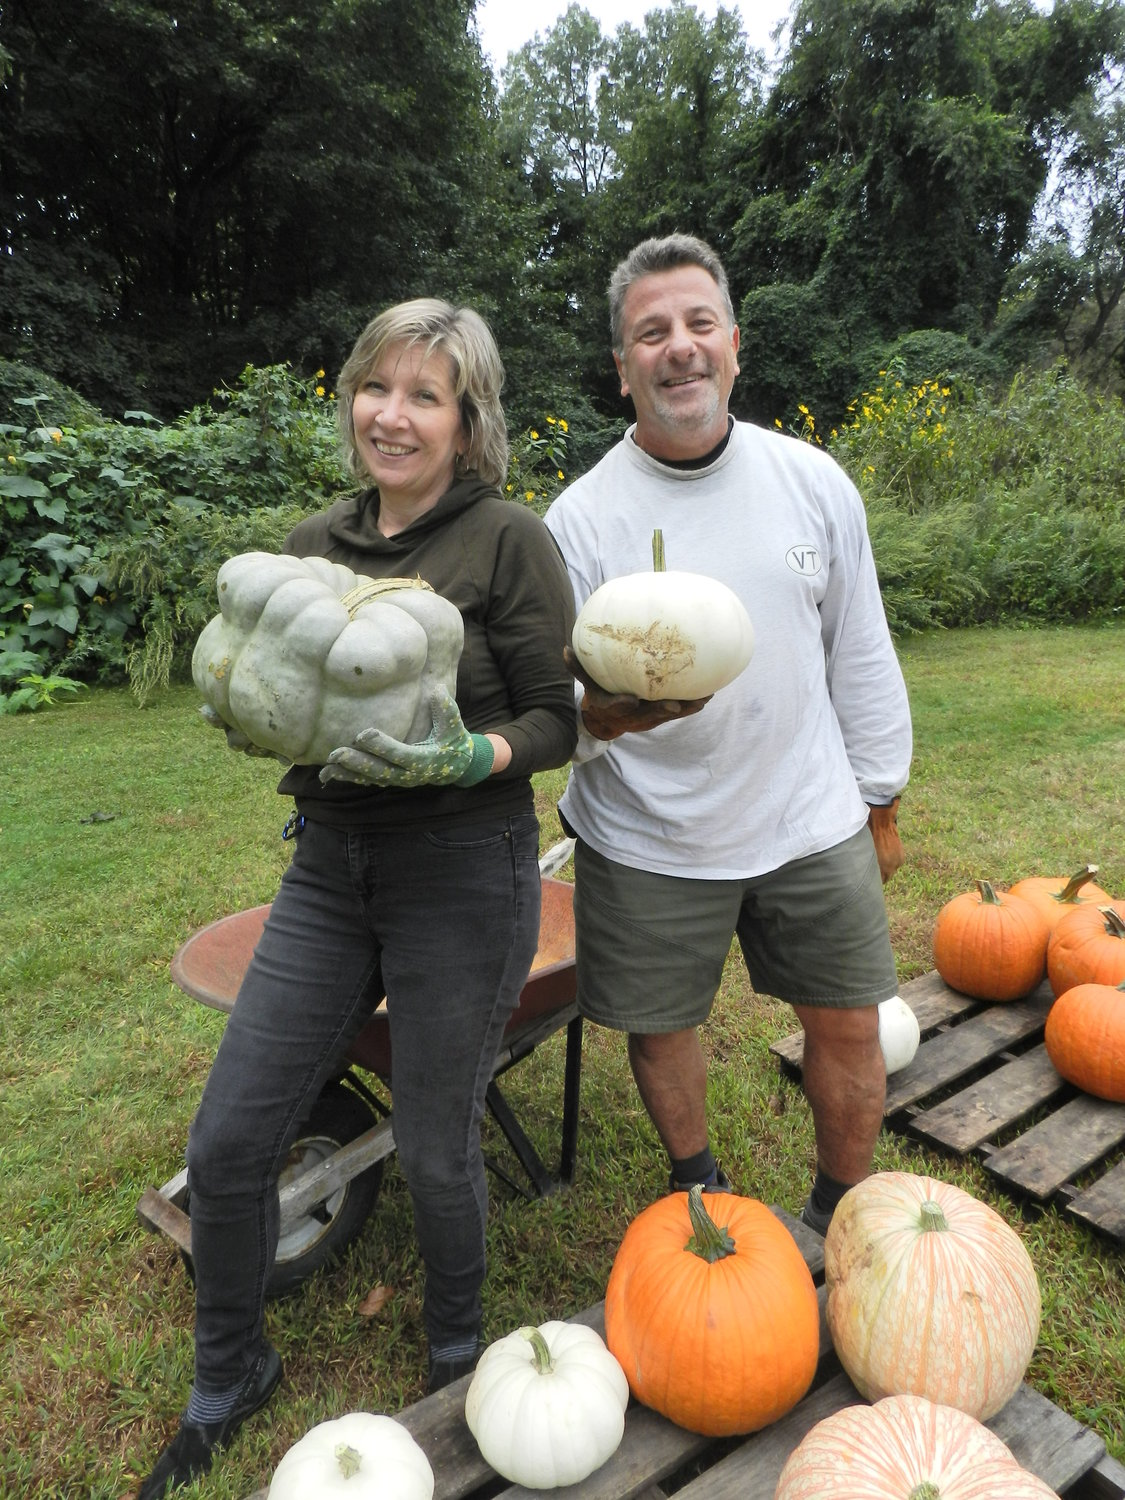 Glen Cove residents Patti Wolf and Mike Carletti, parishioners of United Methodist found a couple of unique pumpkins.